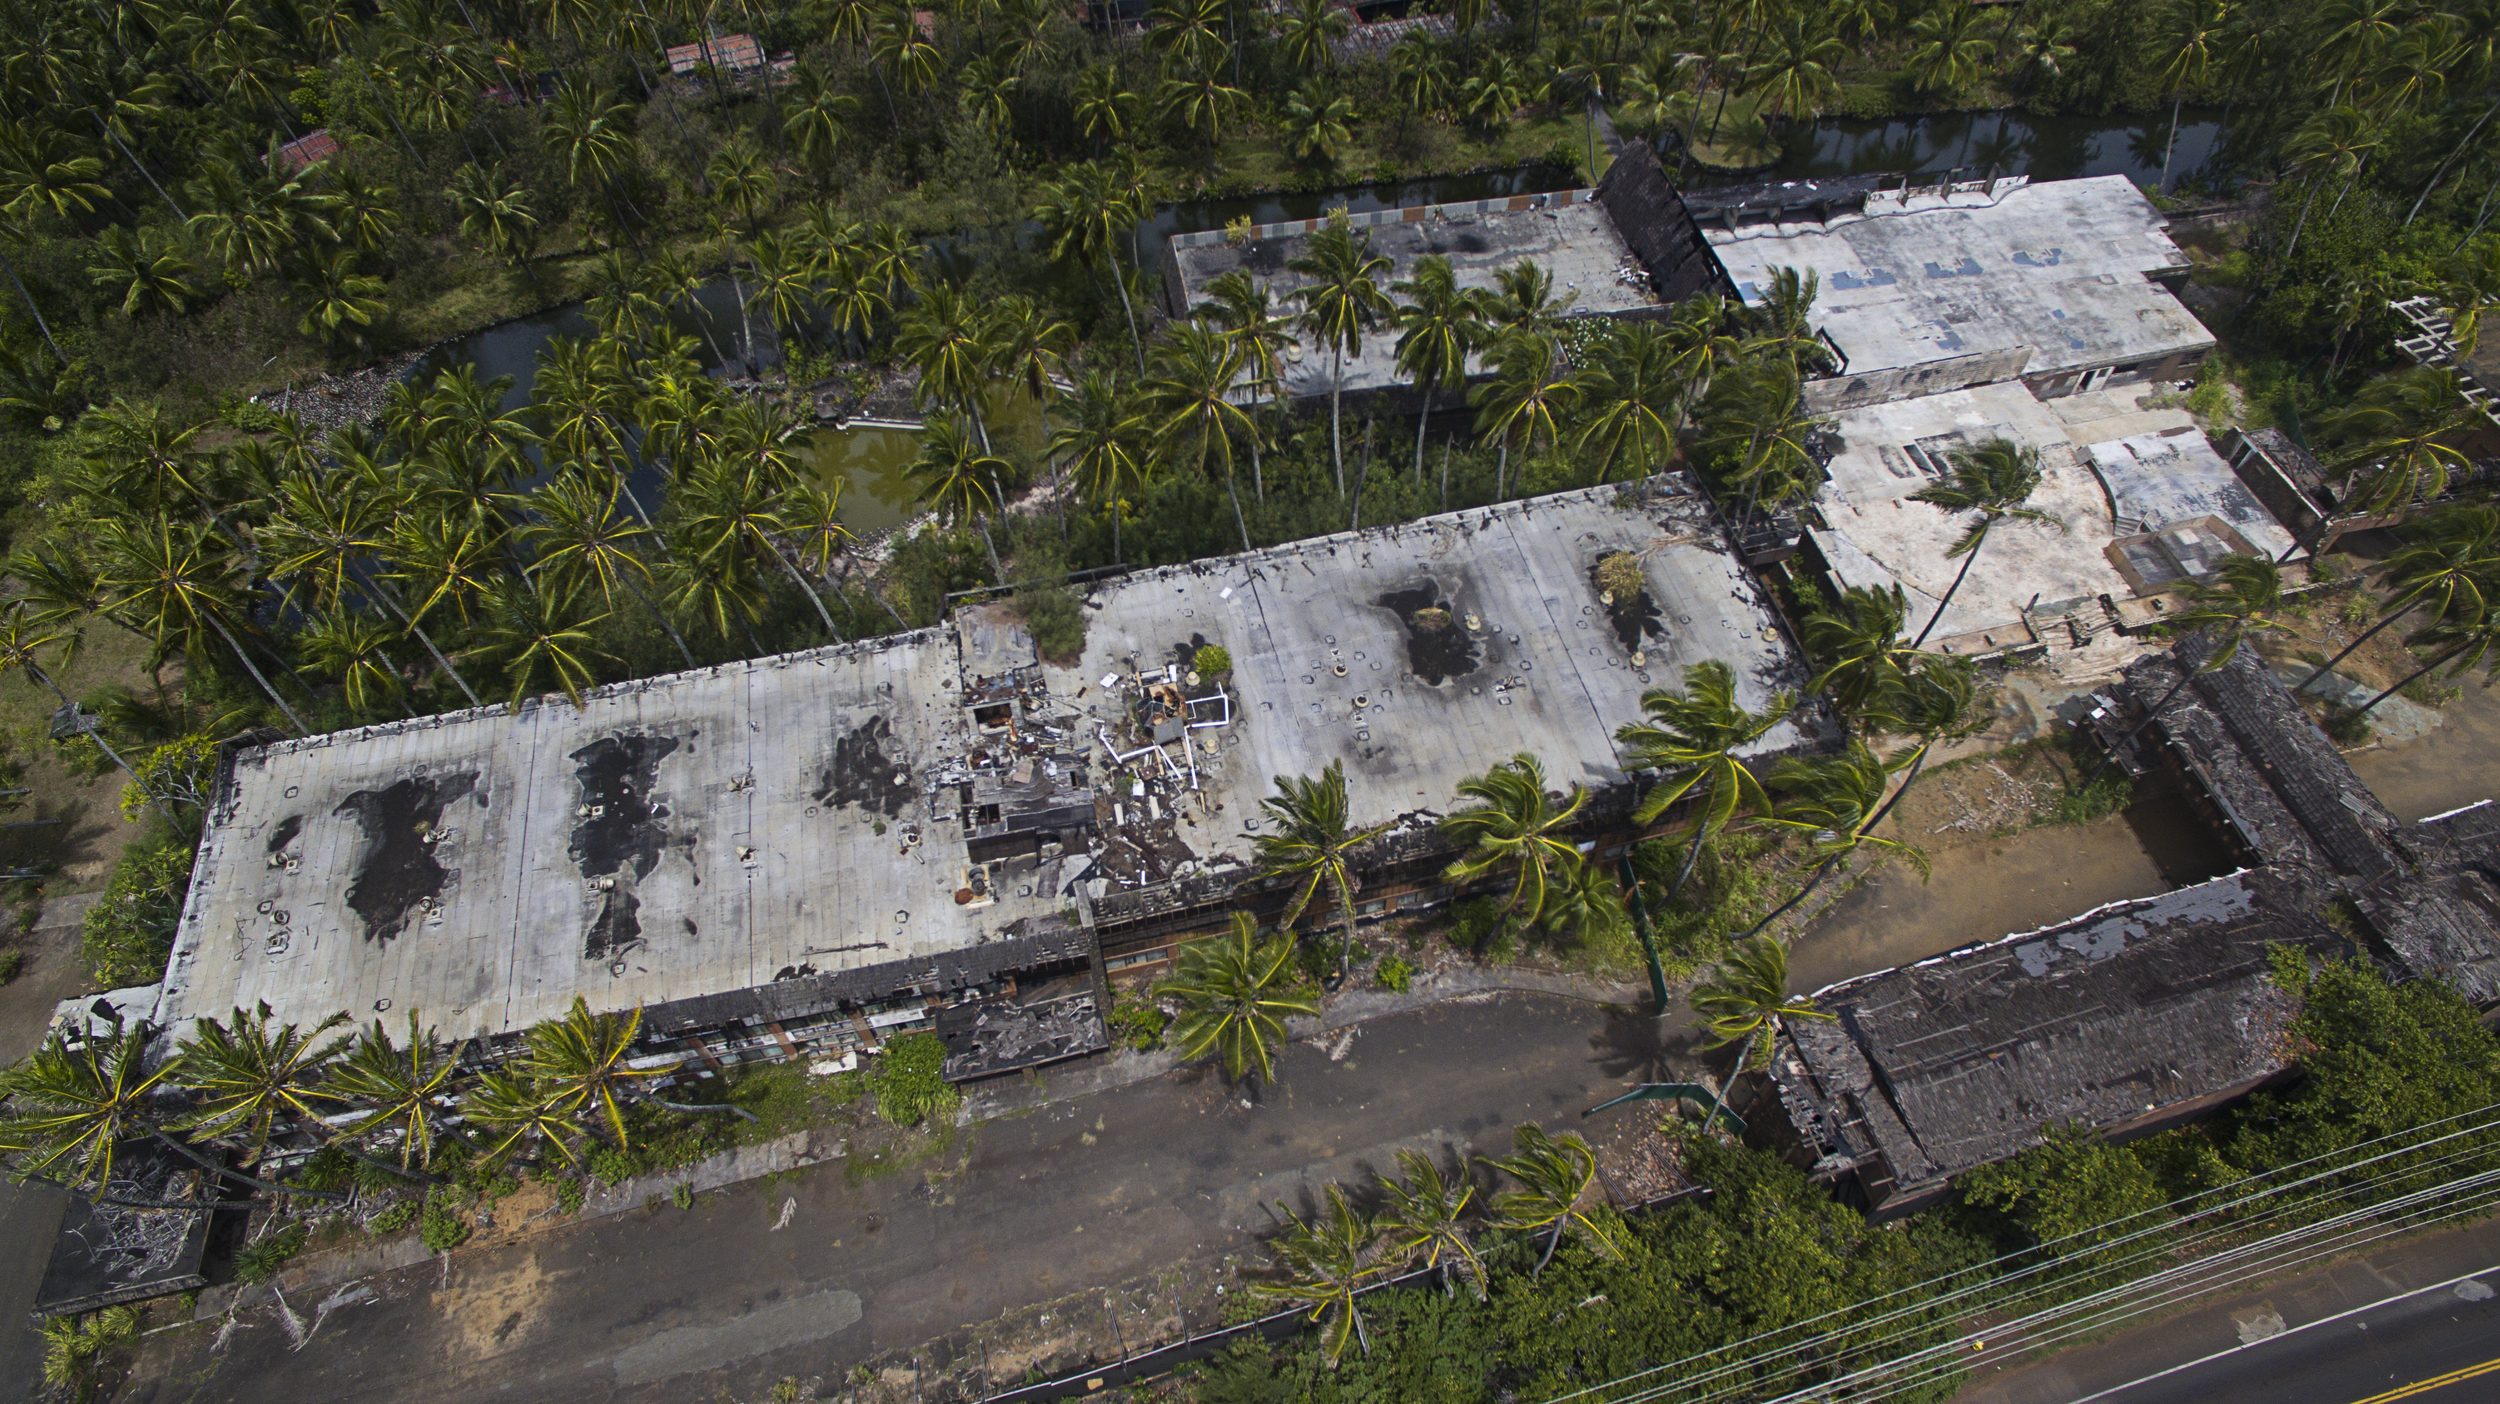 Coco Palms Hotel destroyed by Hurricane Iniki in 1992 - Made famous by Elvis Presley in movie Blue Hawaii, Kauai, 2015